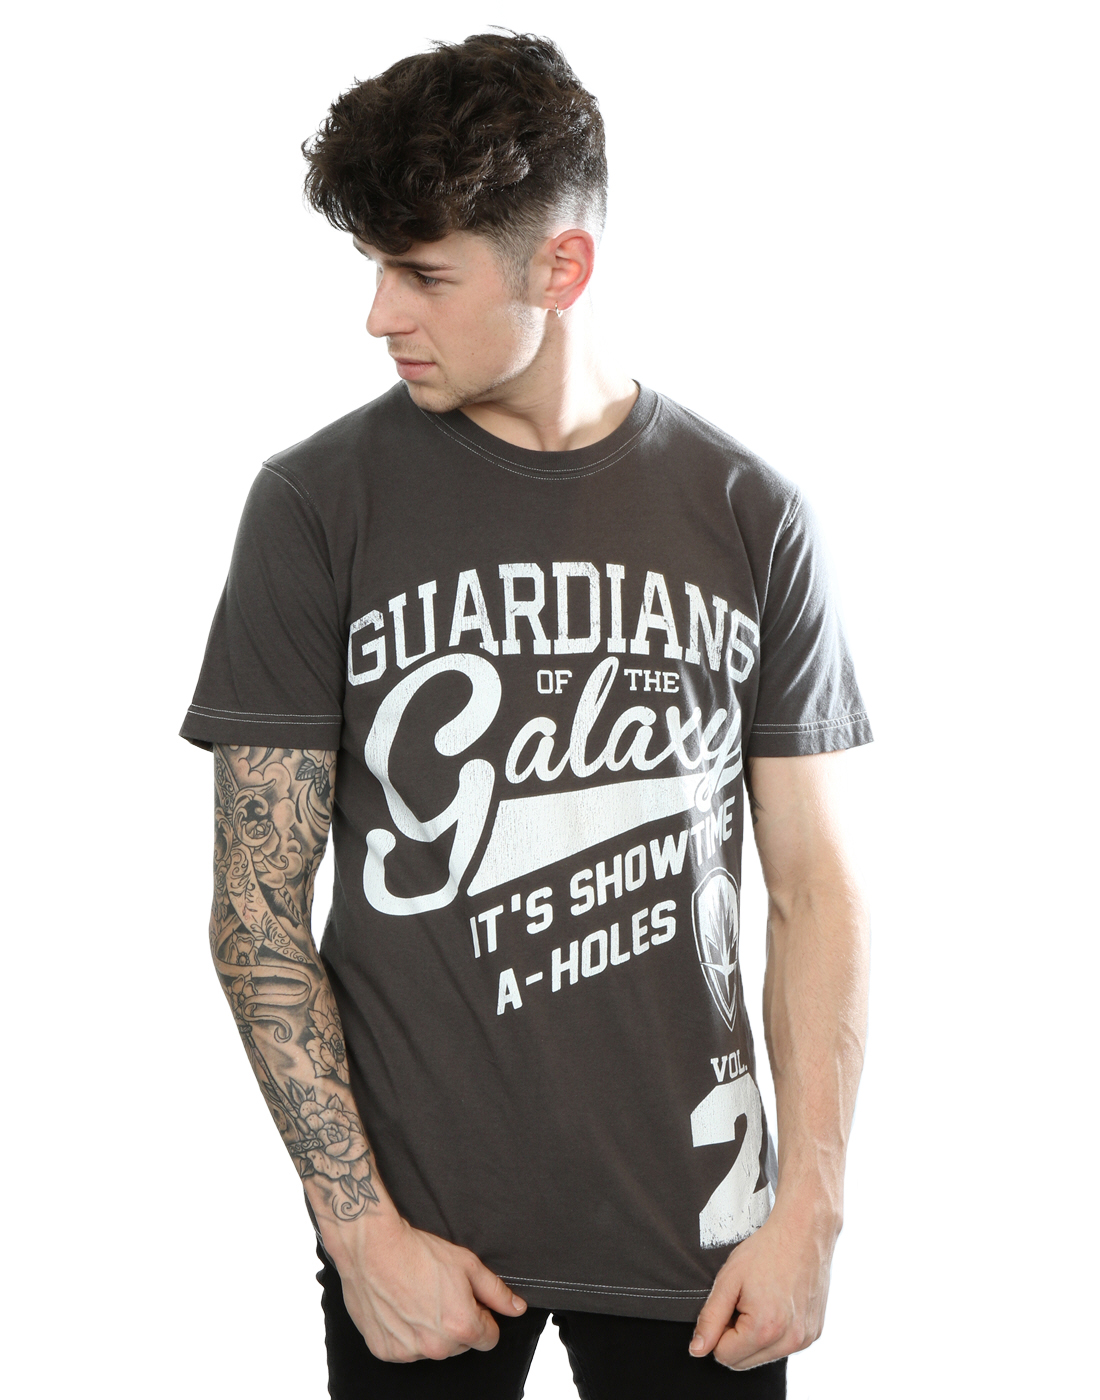 Aftershow Men's Guardians of the Galaxy A-Holes T-Shirt